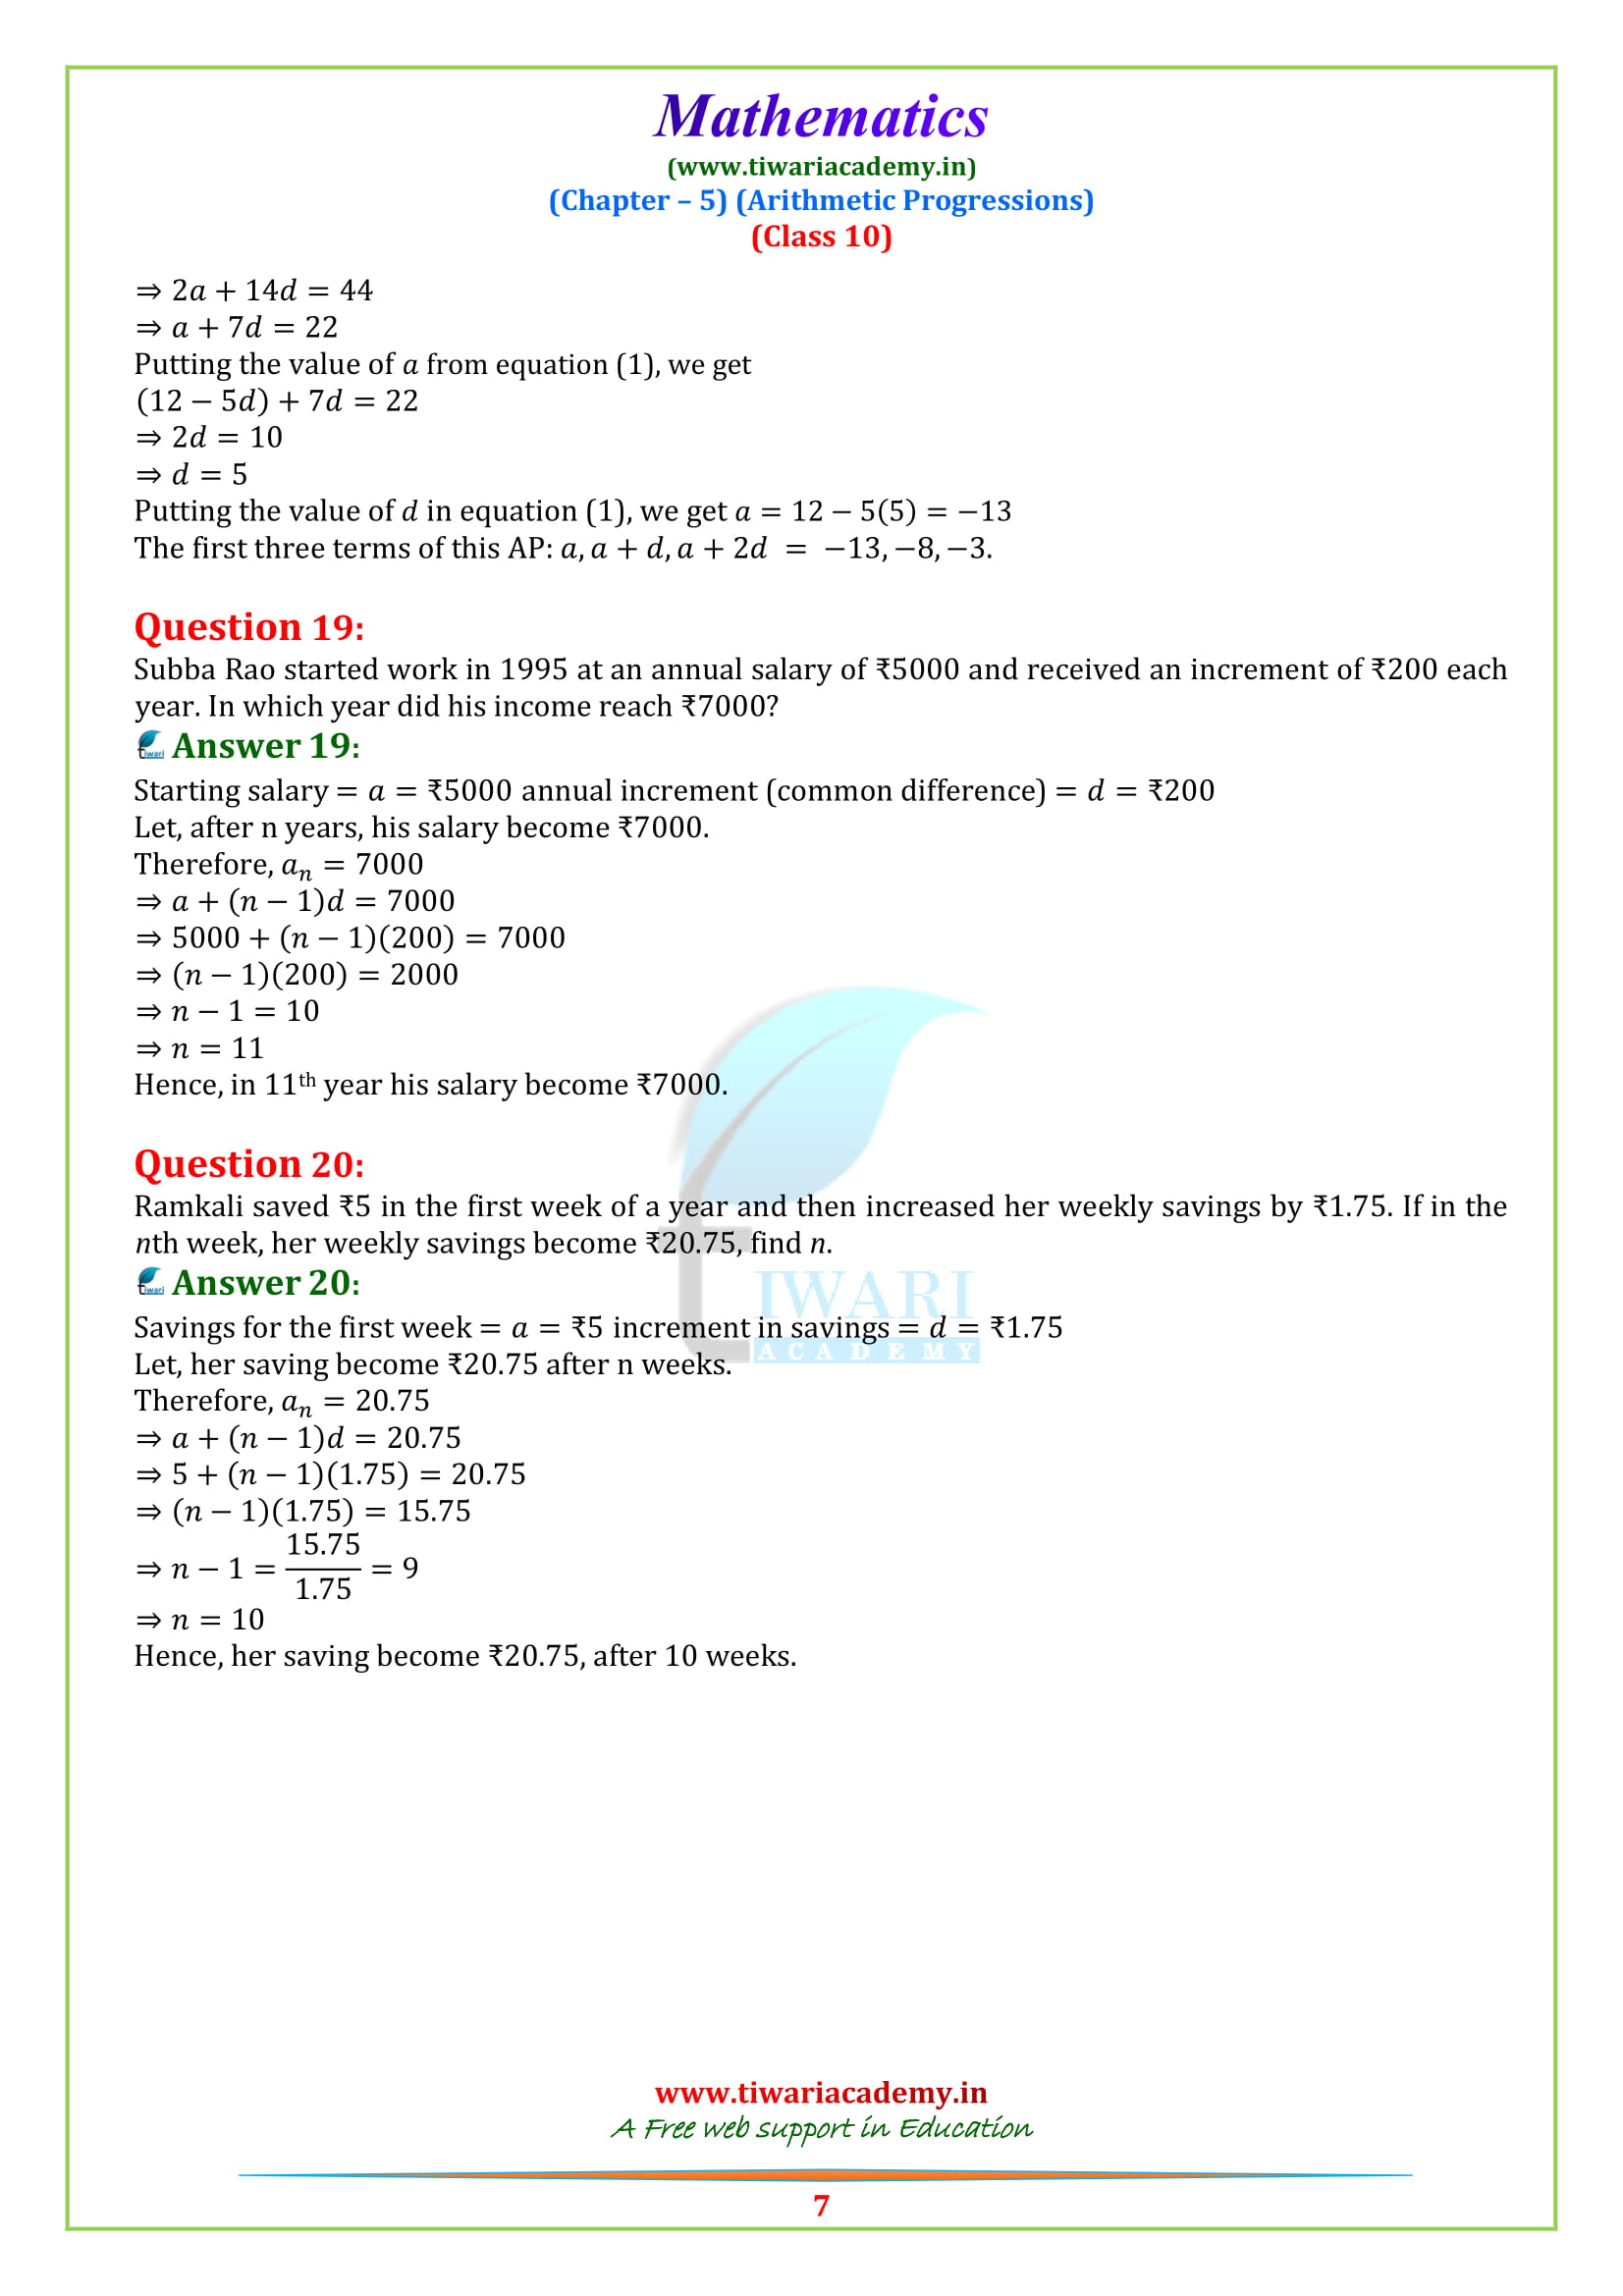 NCERT Solutions for class 10 Maths Exercise 5.2 question 14, 15, 16, 17, 18, 19